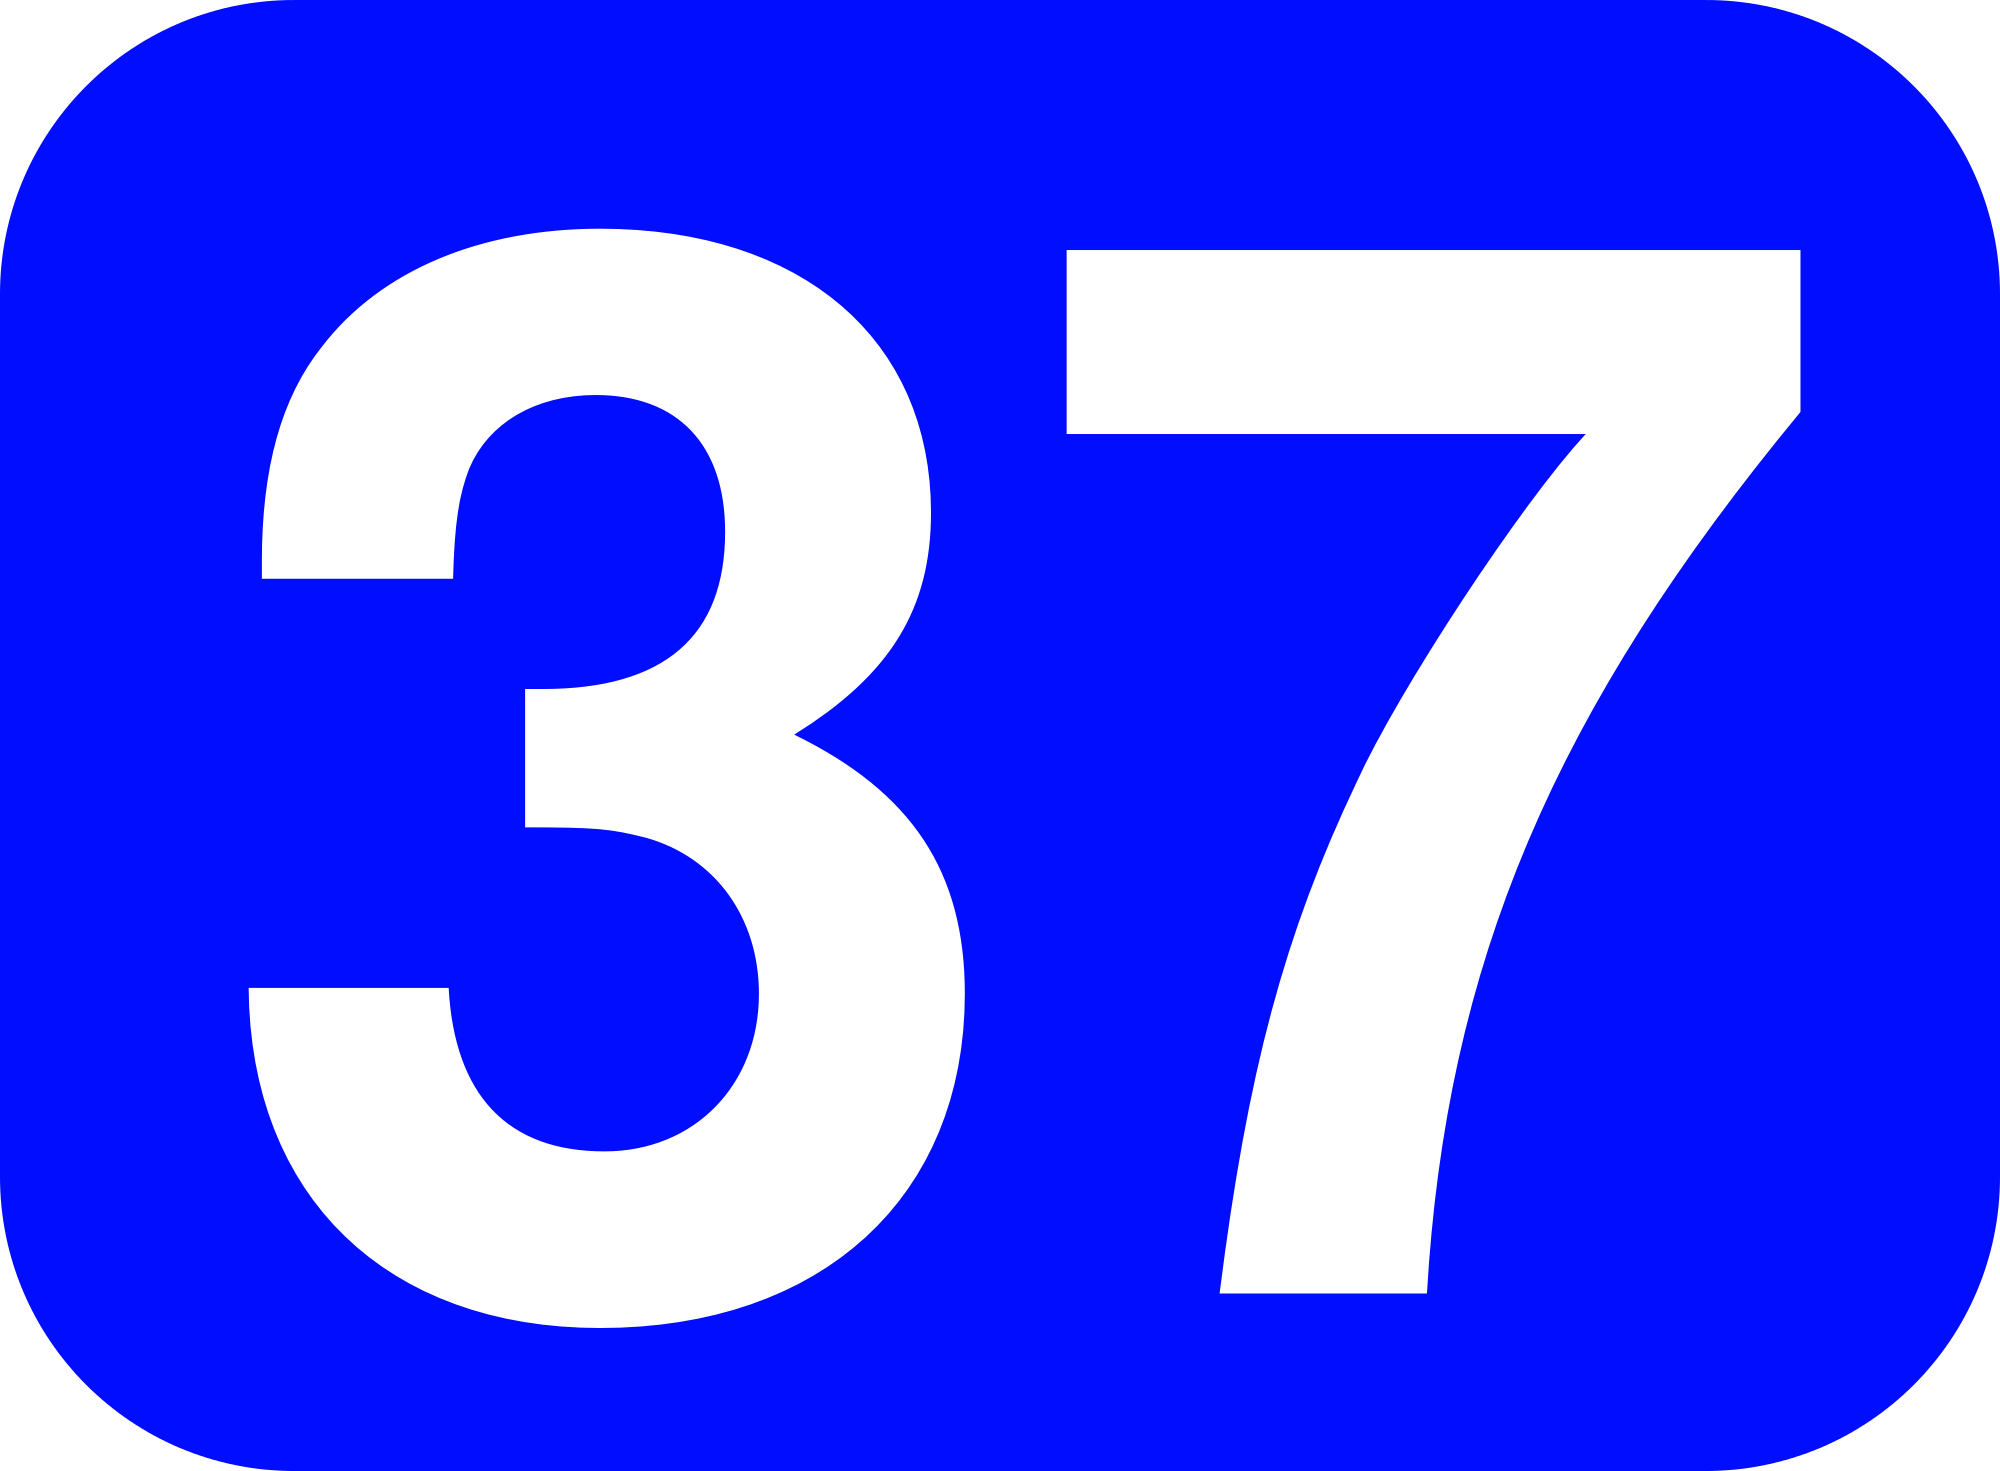 File:37 white, blue rounded rectangle.png